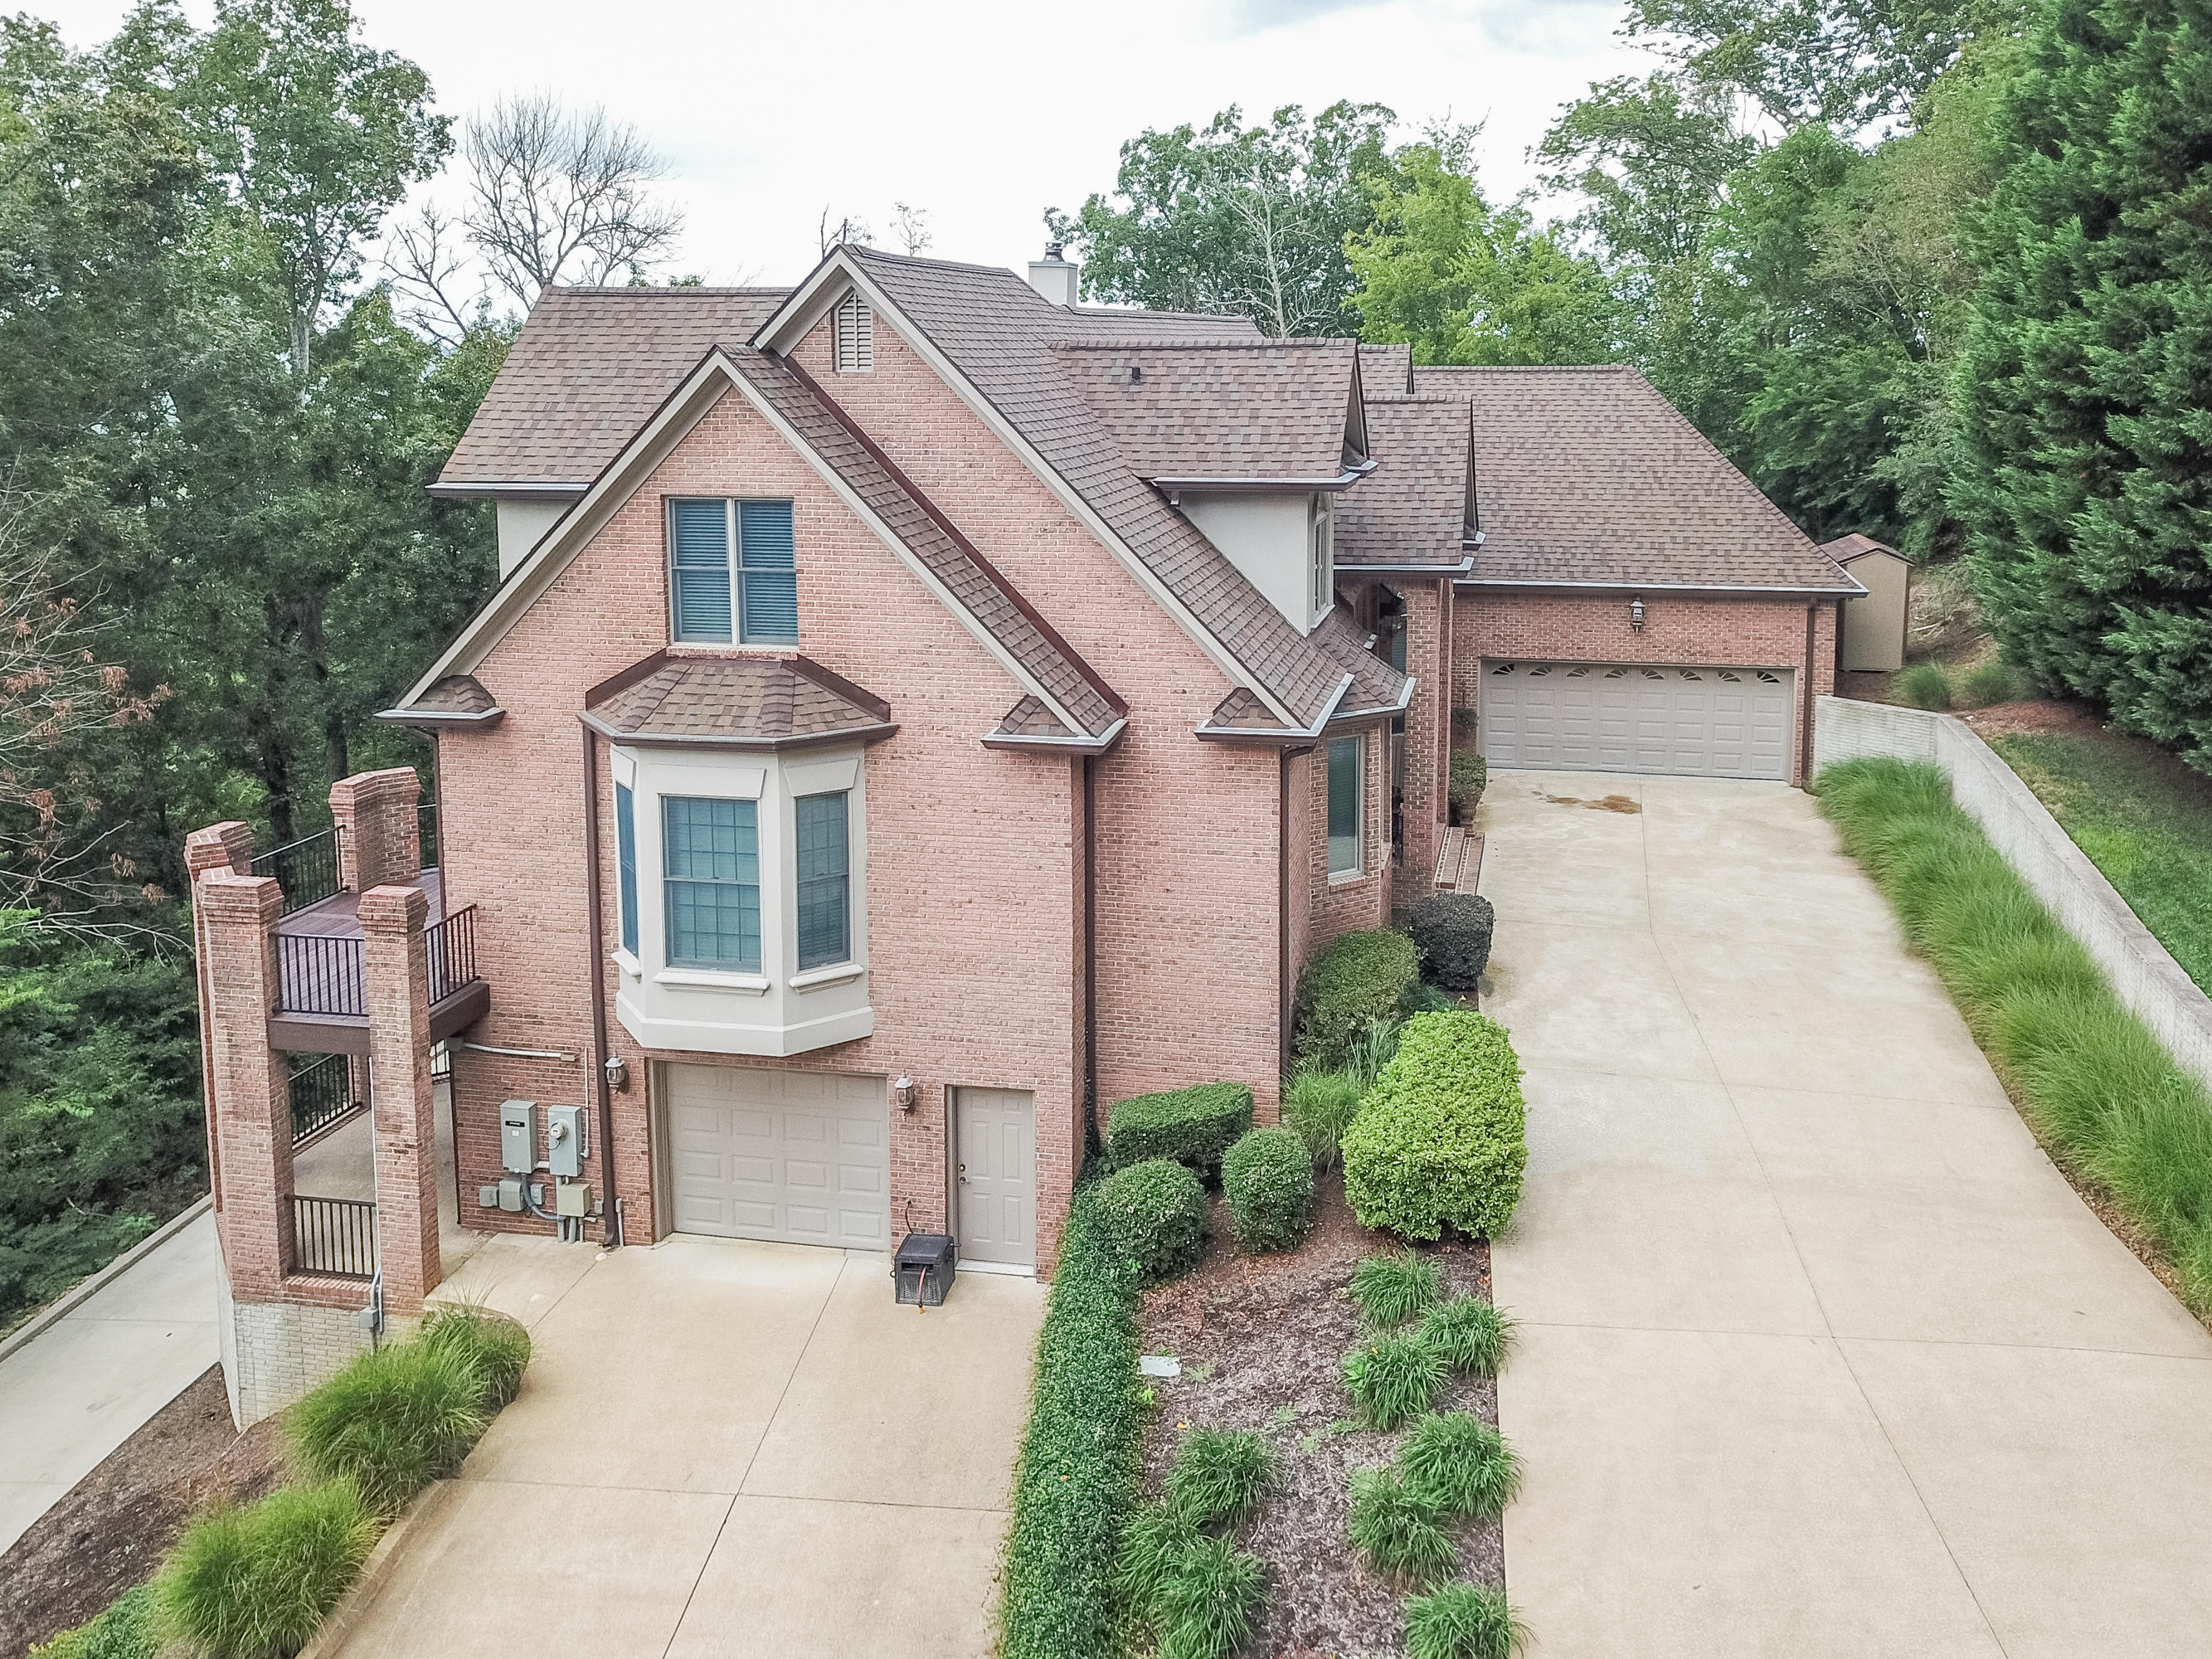 Details for 9954 Frost Ridge, Ooltewah, TN 37363